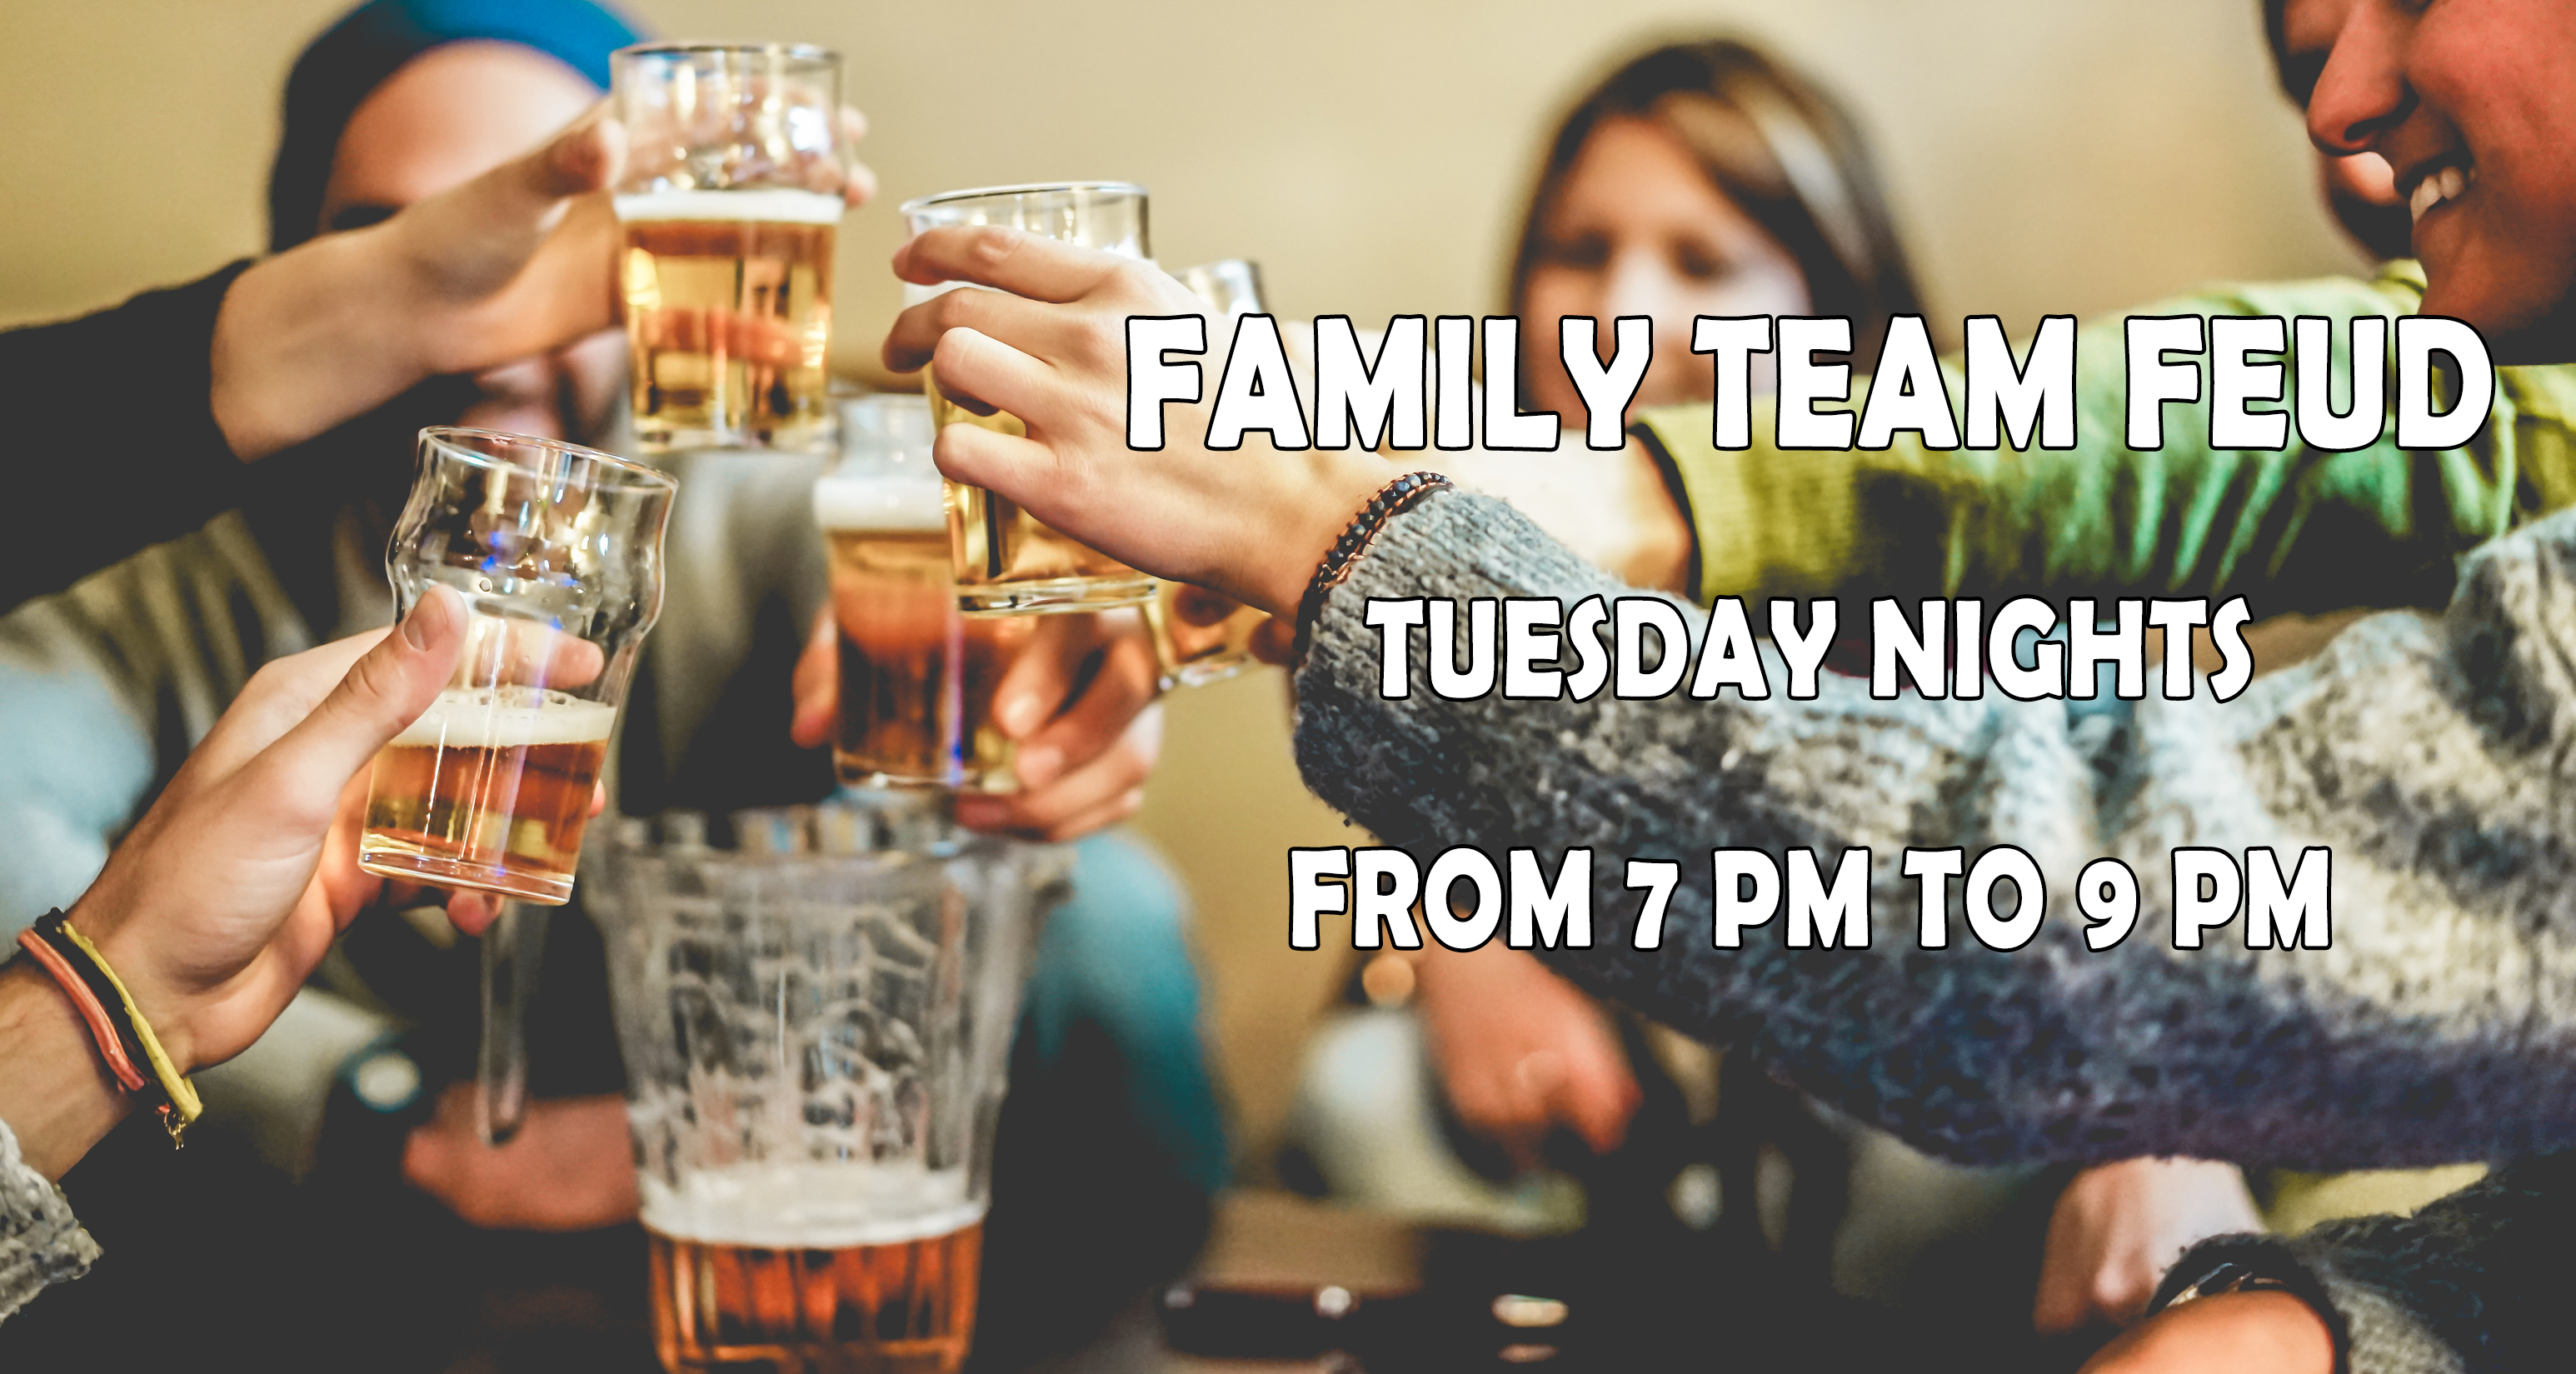 Family Team Feud Tuesday Nights from 7pm to 9pm